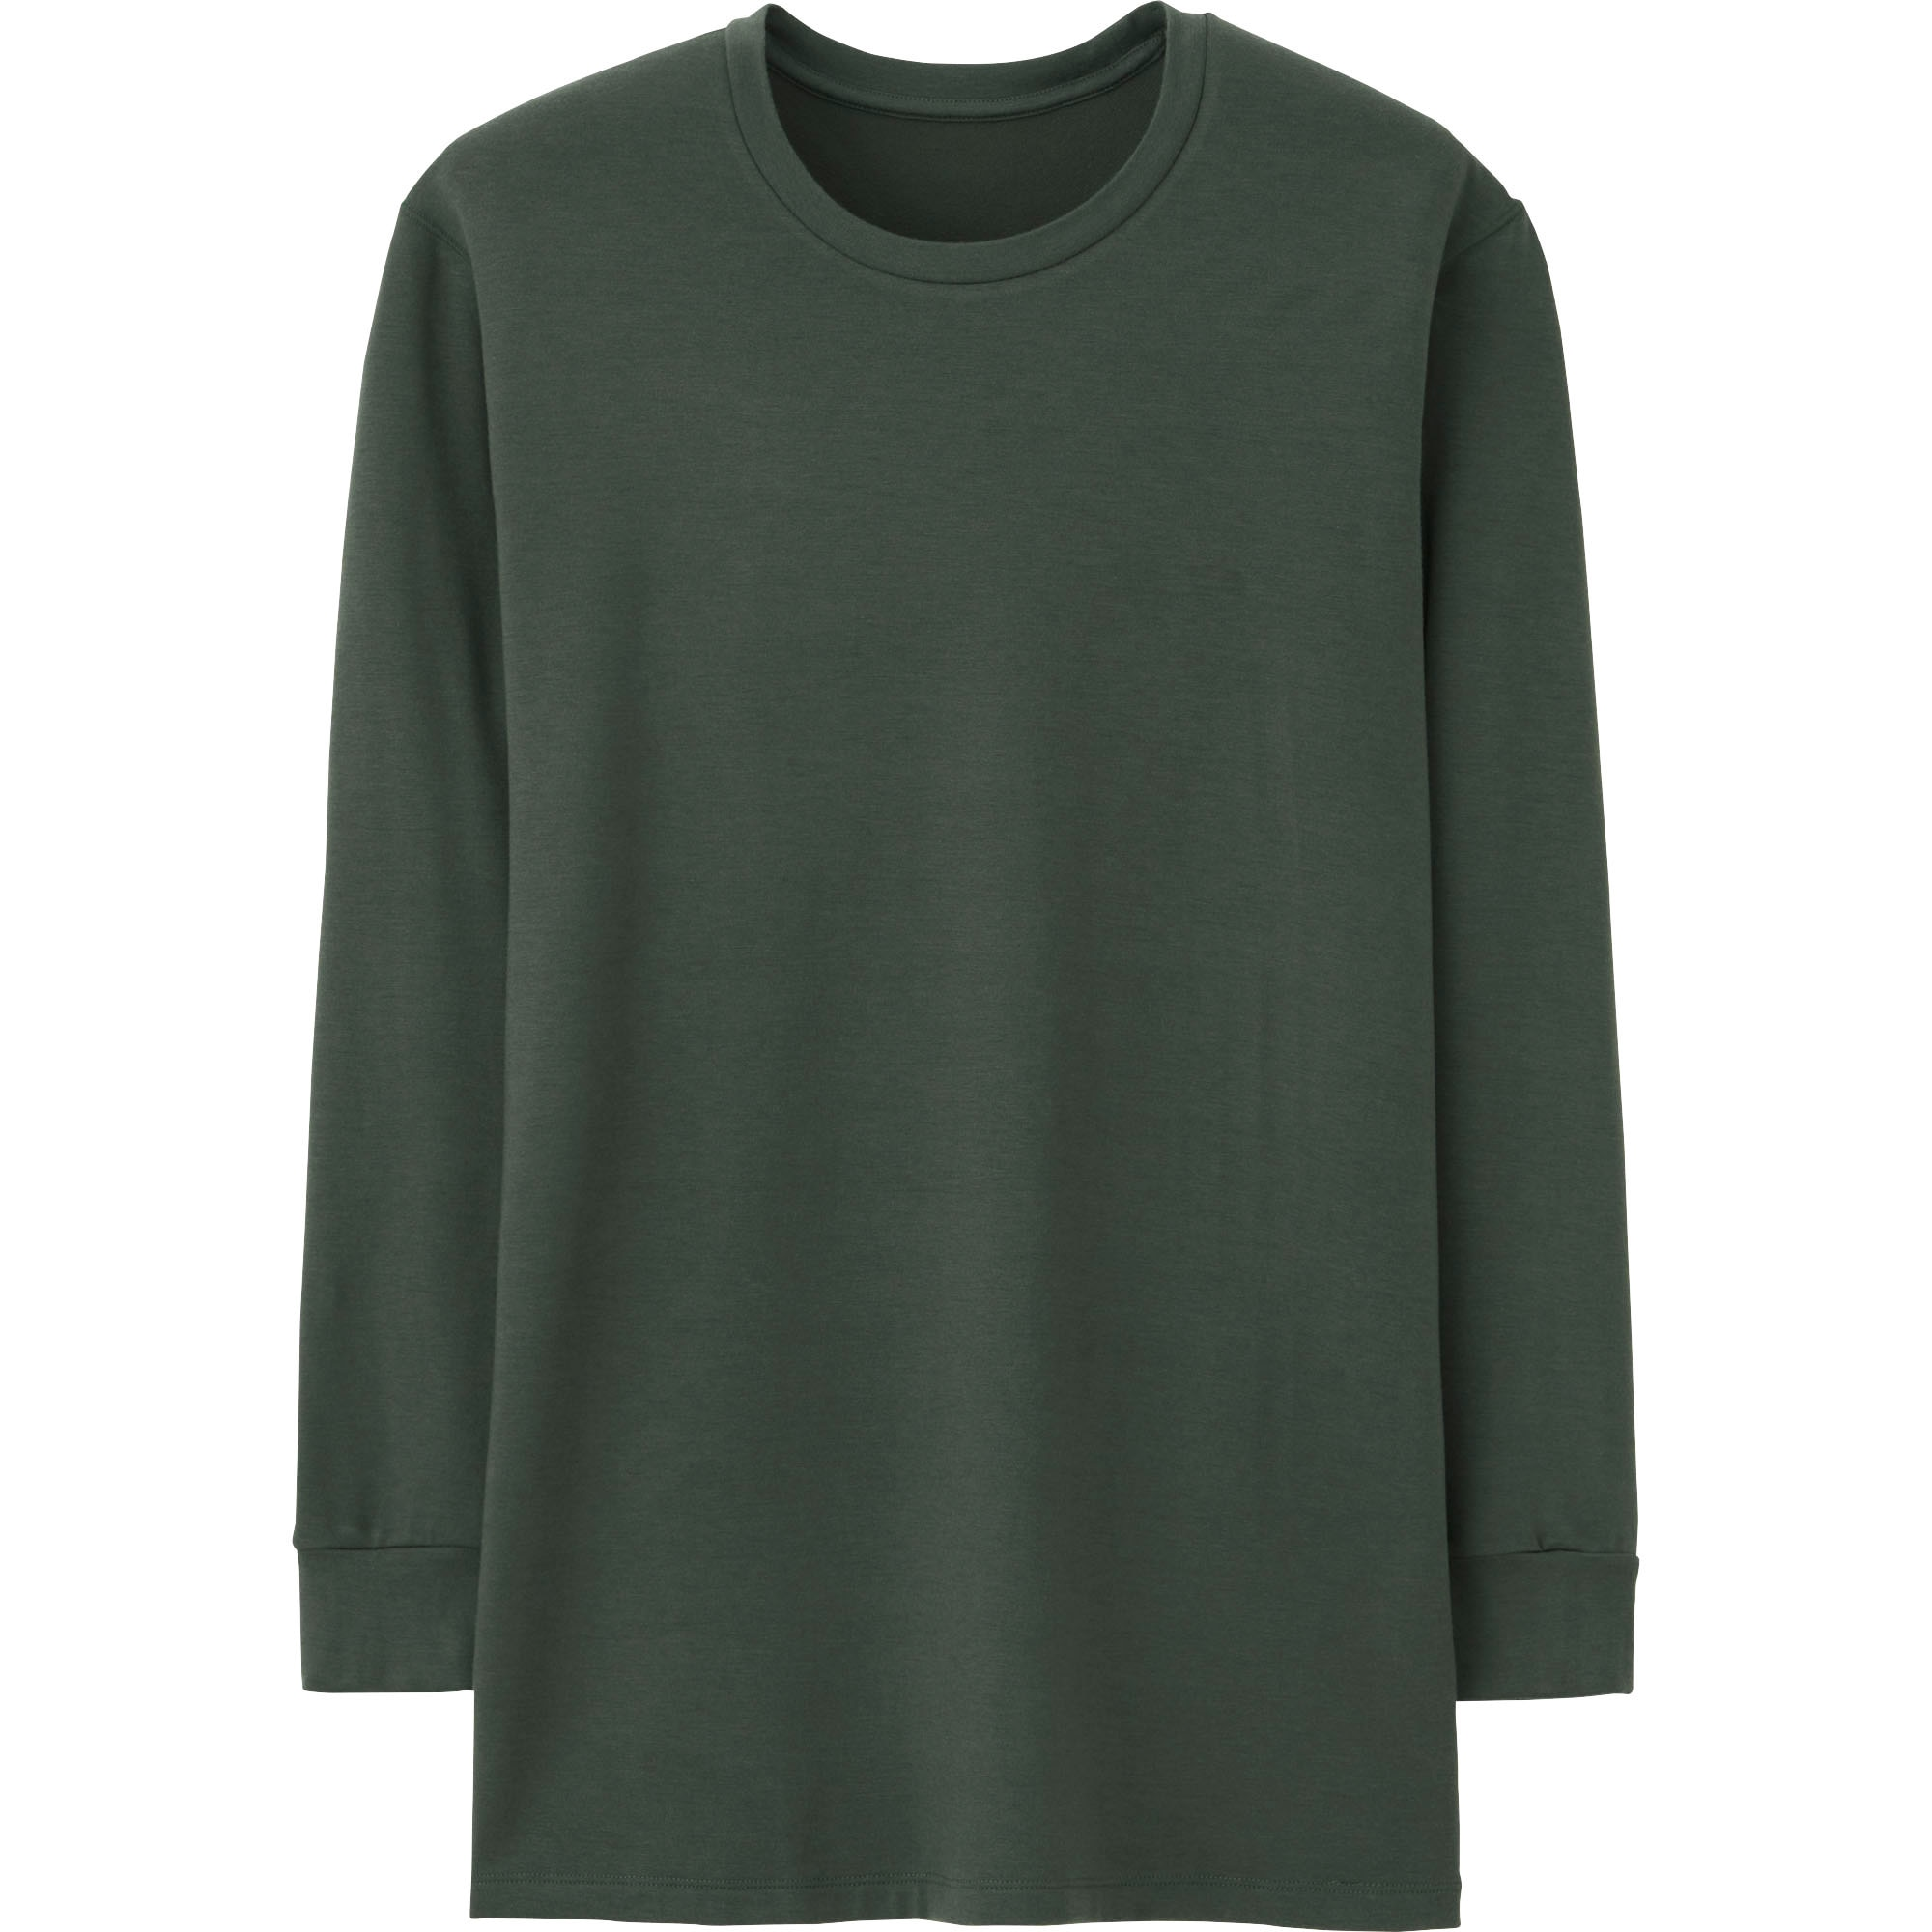 3ec62c96 Men HEATTECH Long Sleeve Extra Warm T-Shirt | UNIQLO US